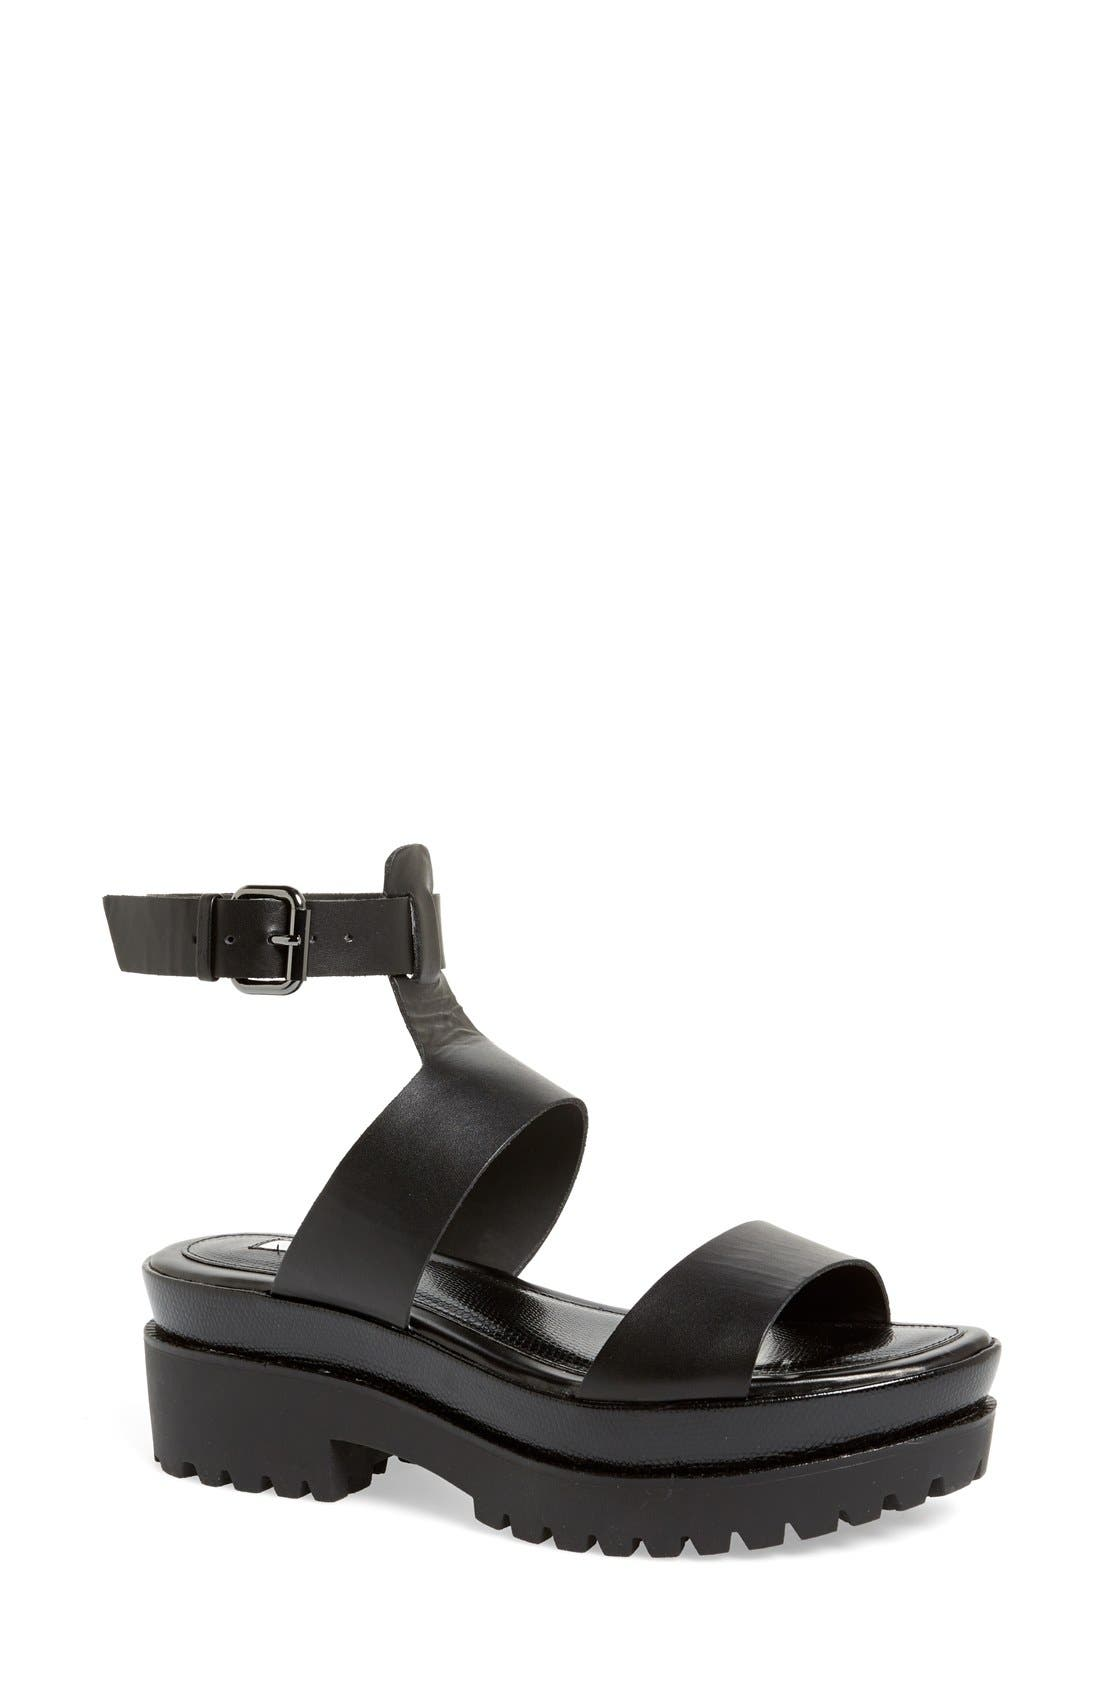 Alternate Image 1 Selected - Topshop 'Fernando' Sandal